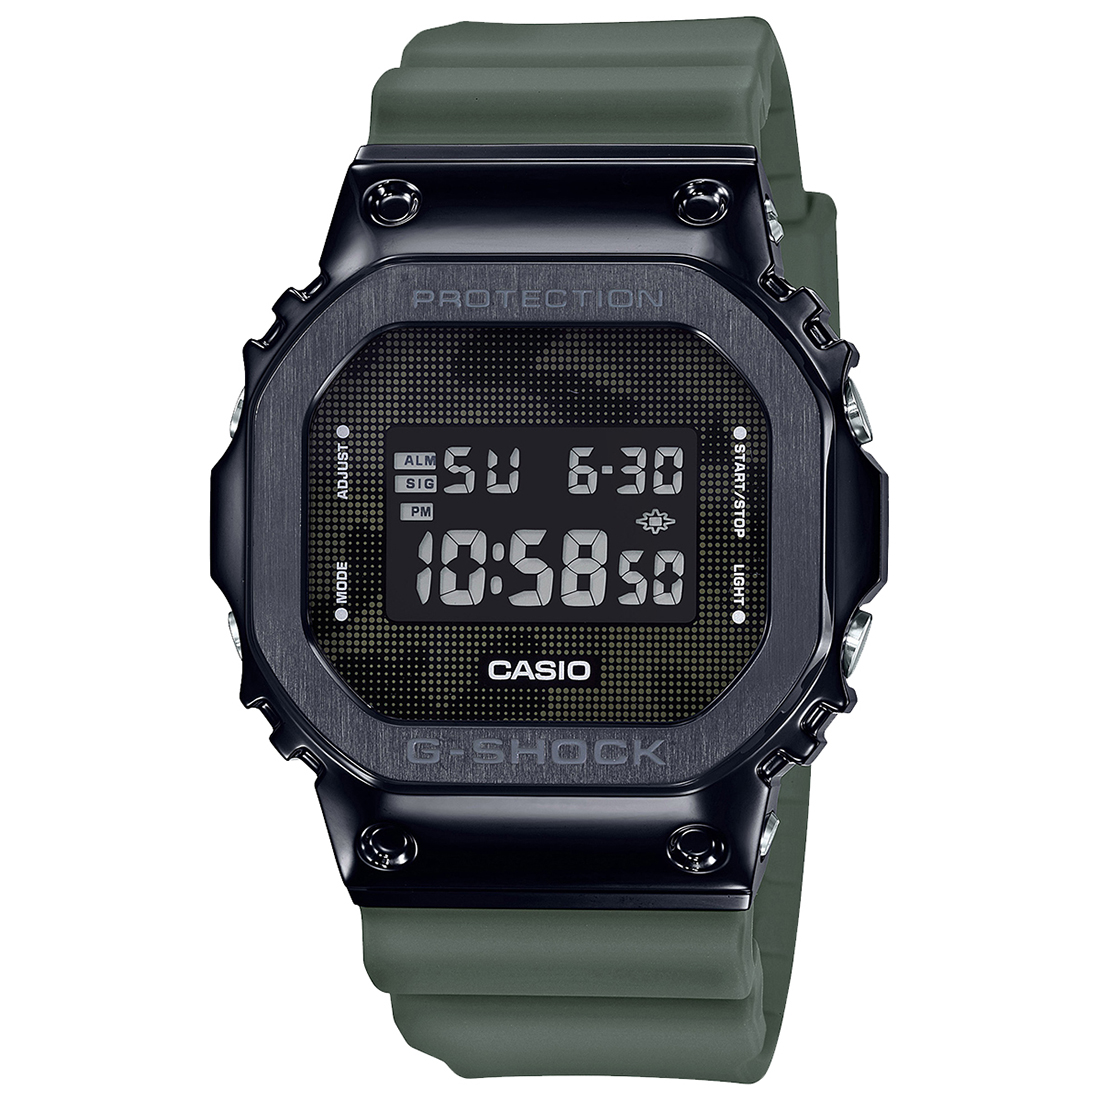 Casio-G-Shock-GM-5600B-3DR-G994-Digital-Men's-watch-G994